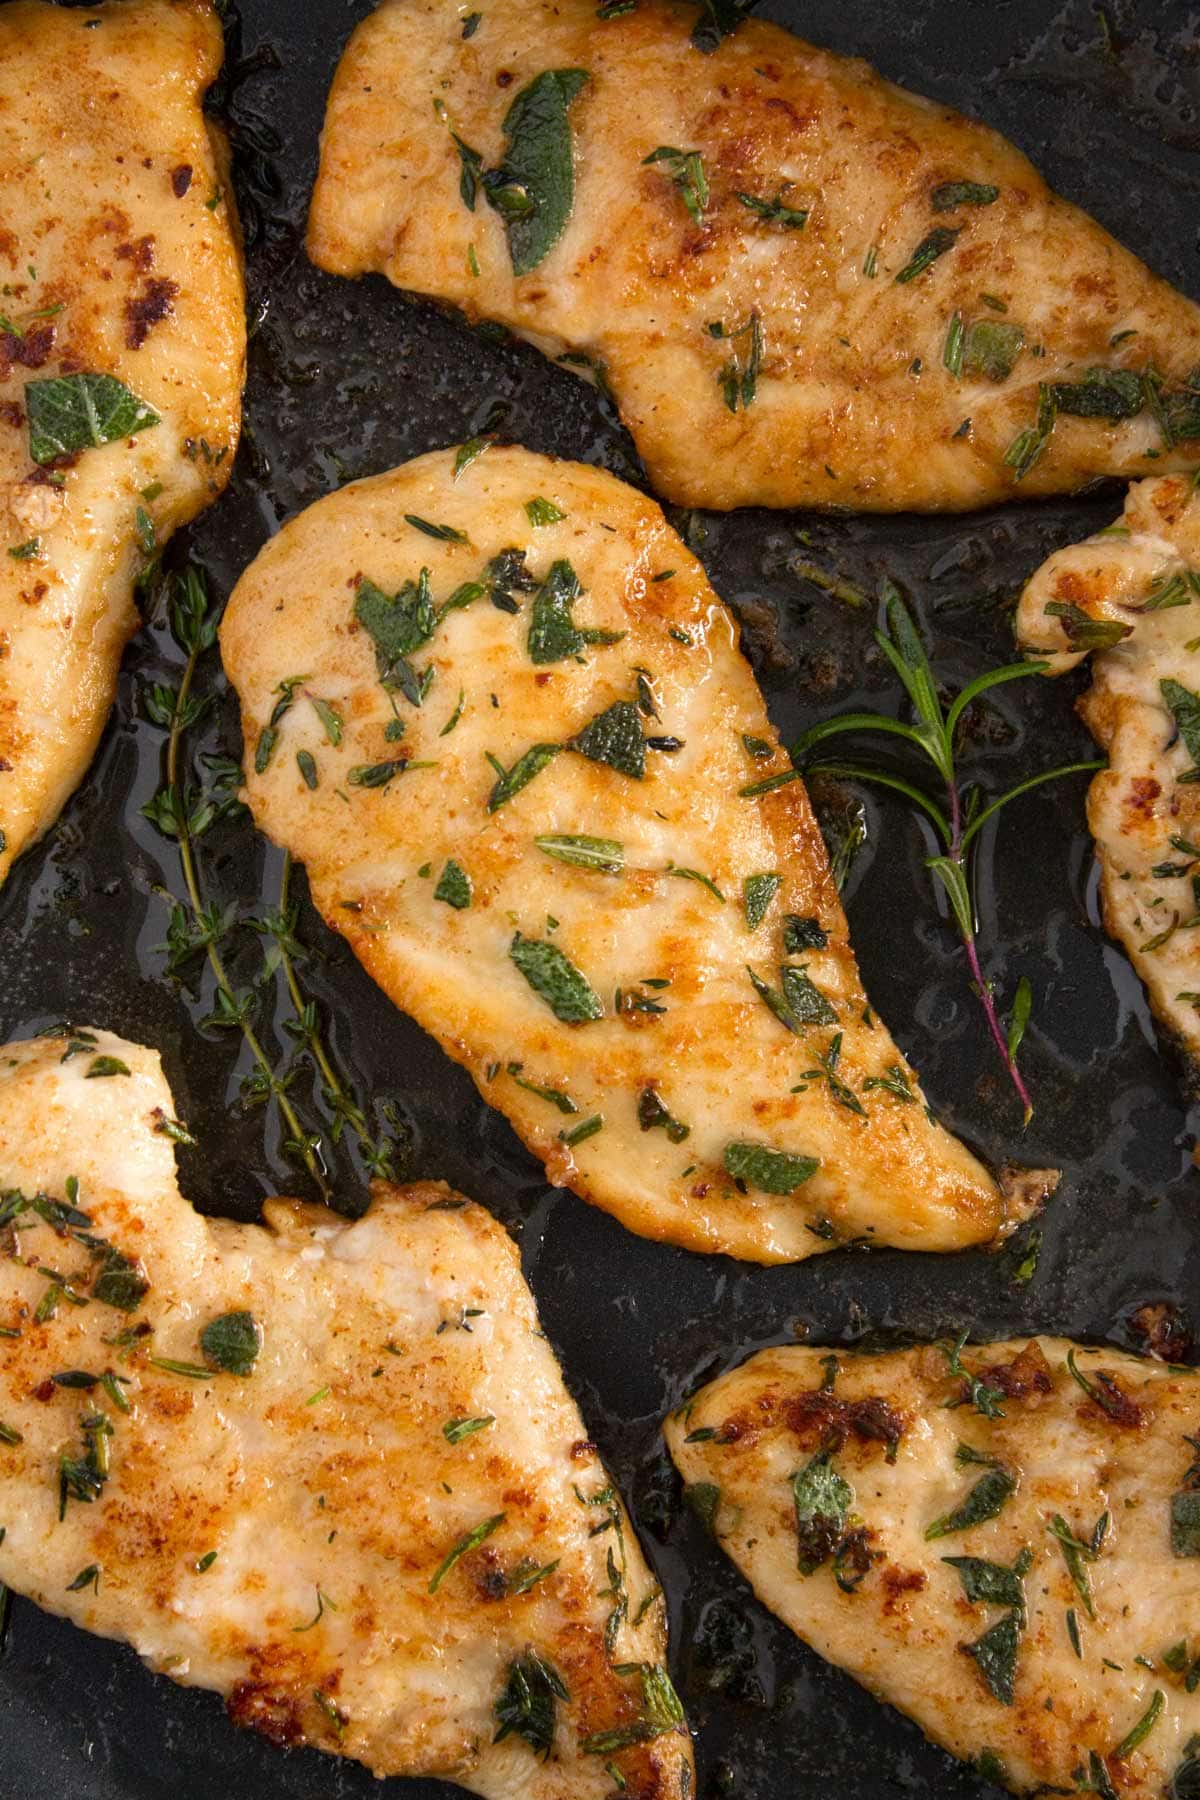 Finished skillet of juicy chicken breasts in a skillet covered in a brown butter herb sauce.